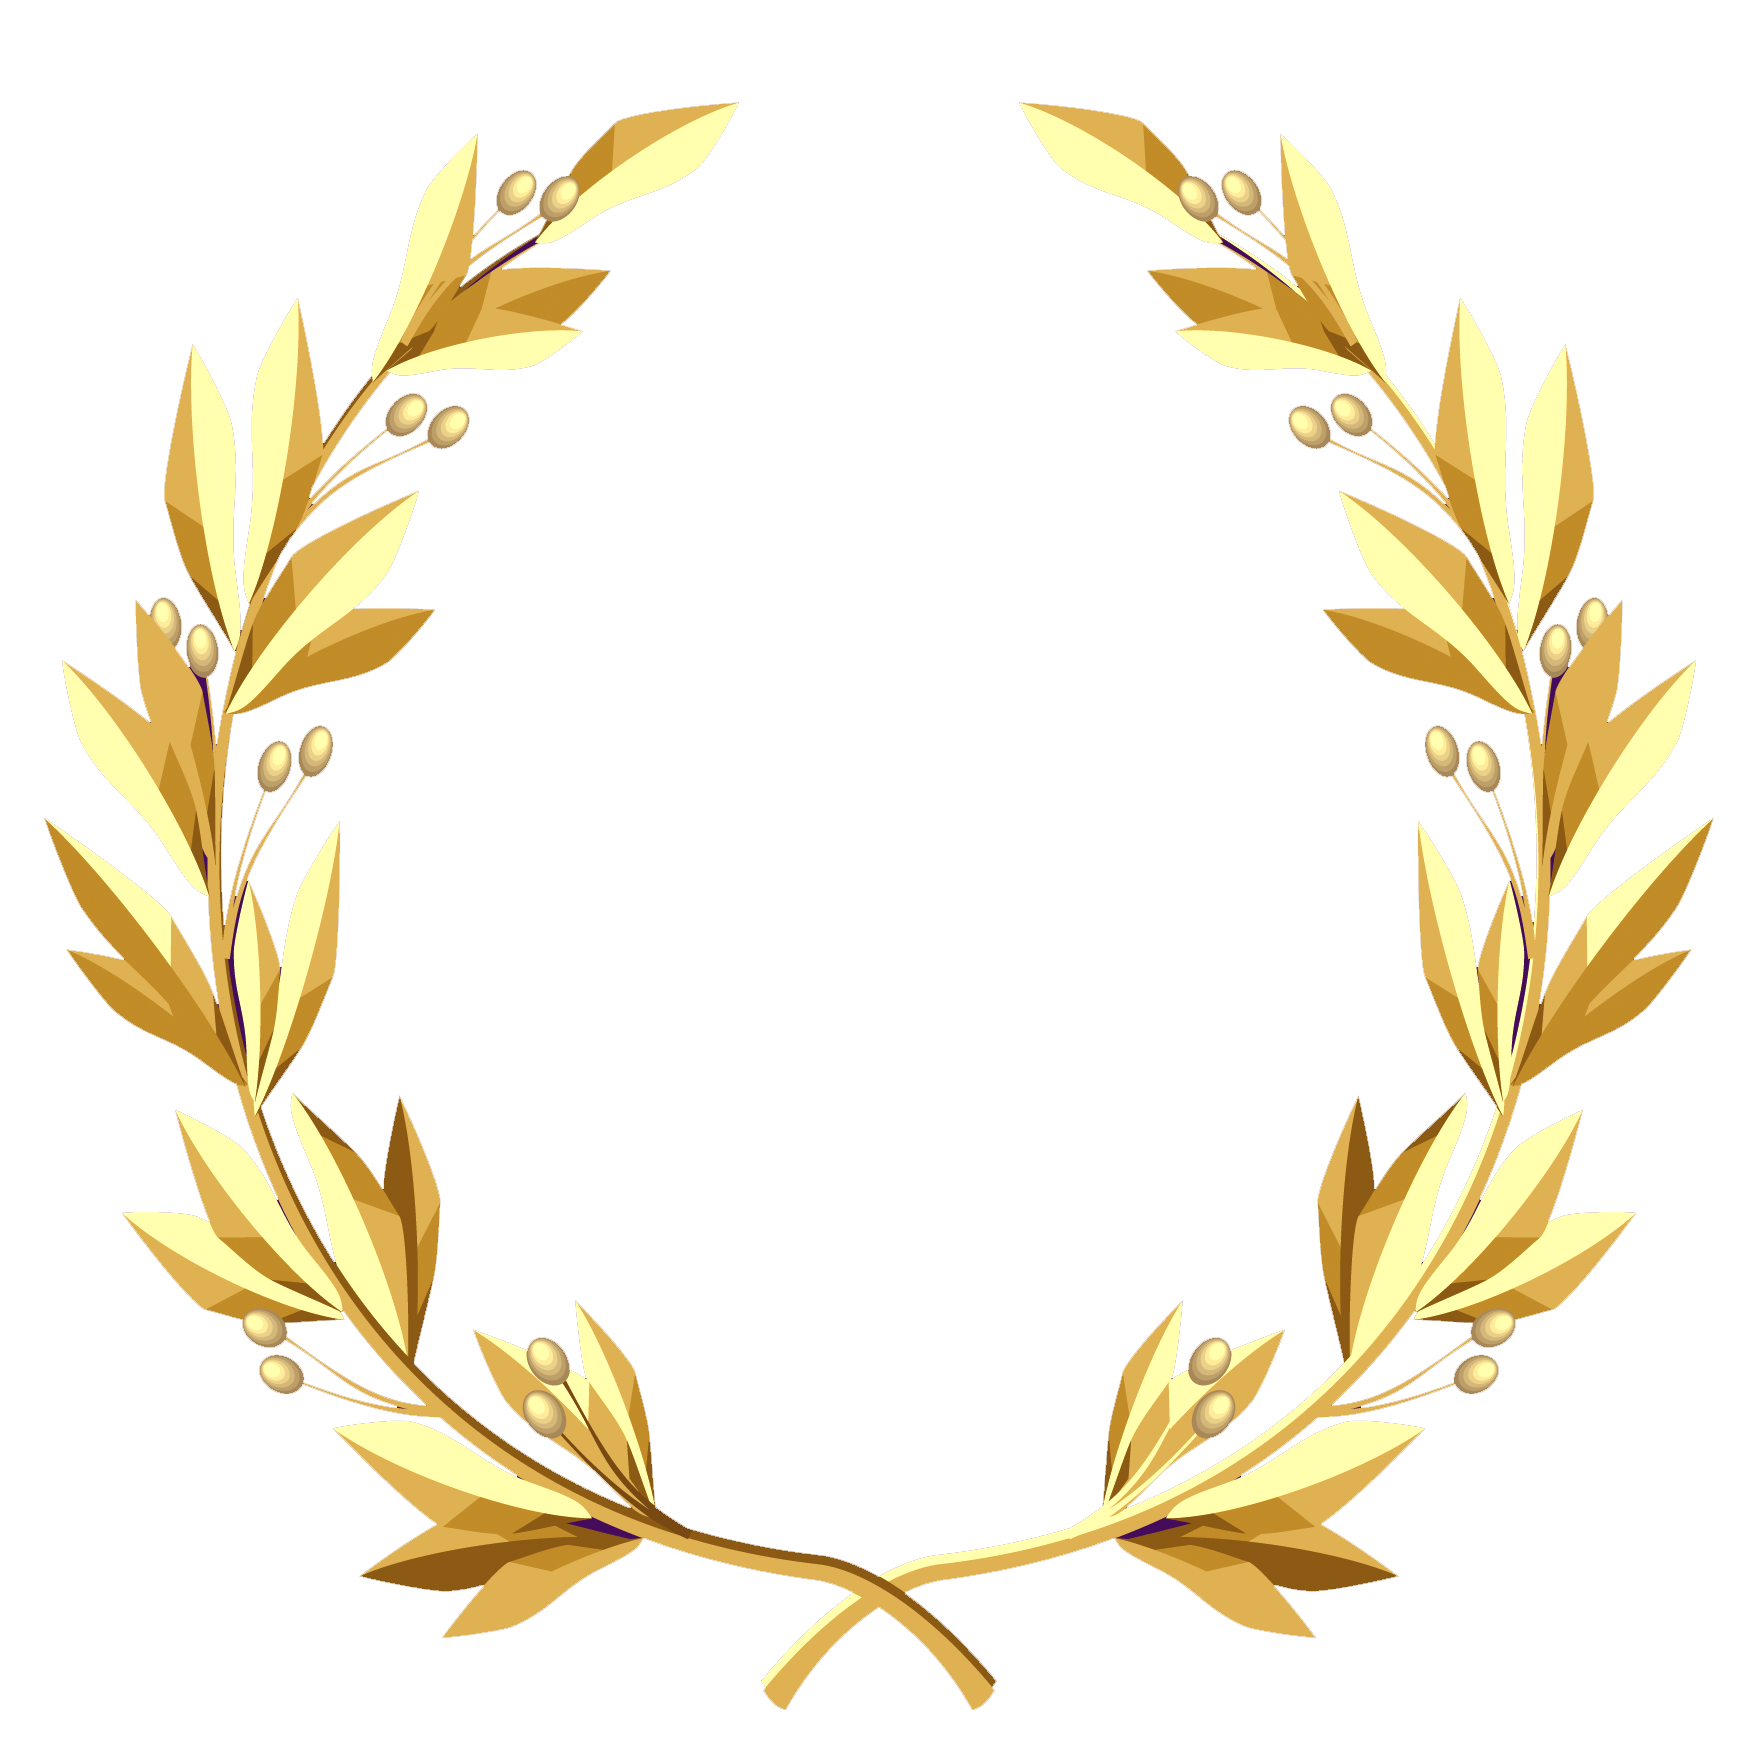 clip freeuse download Transparent gold png picture. Leaf wreath clipart